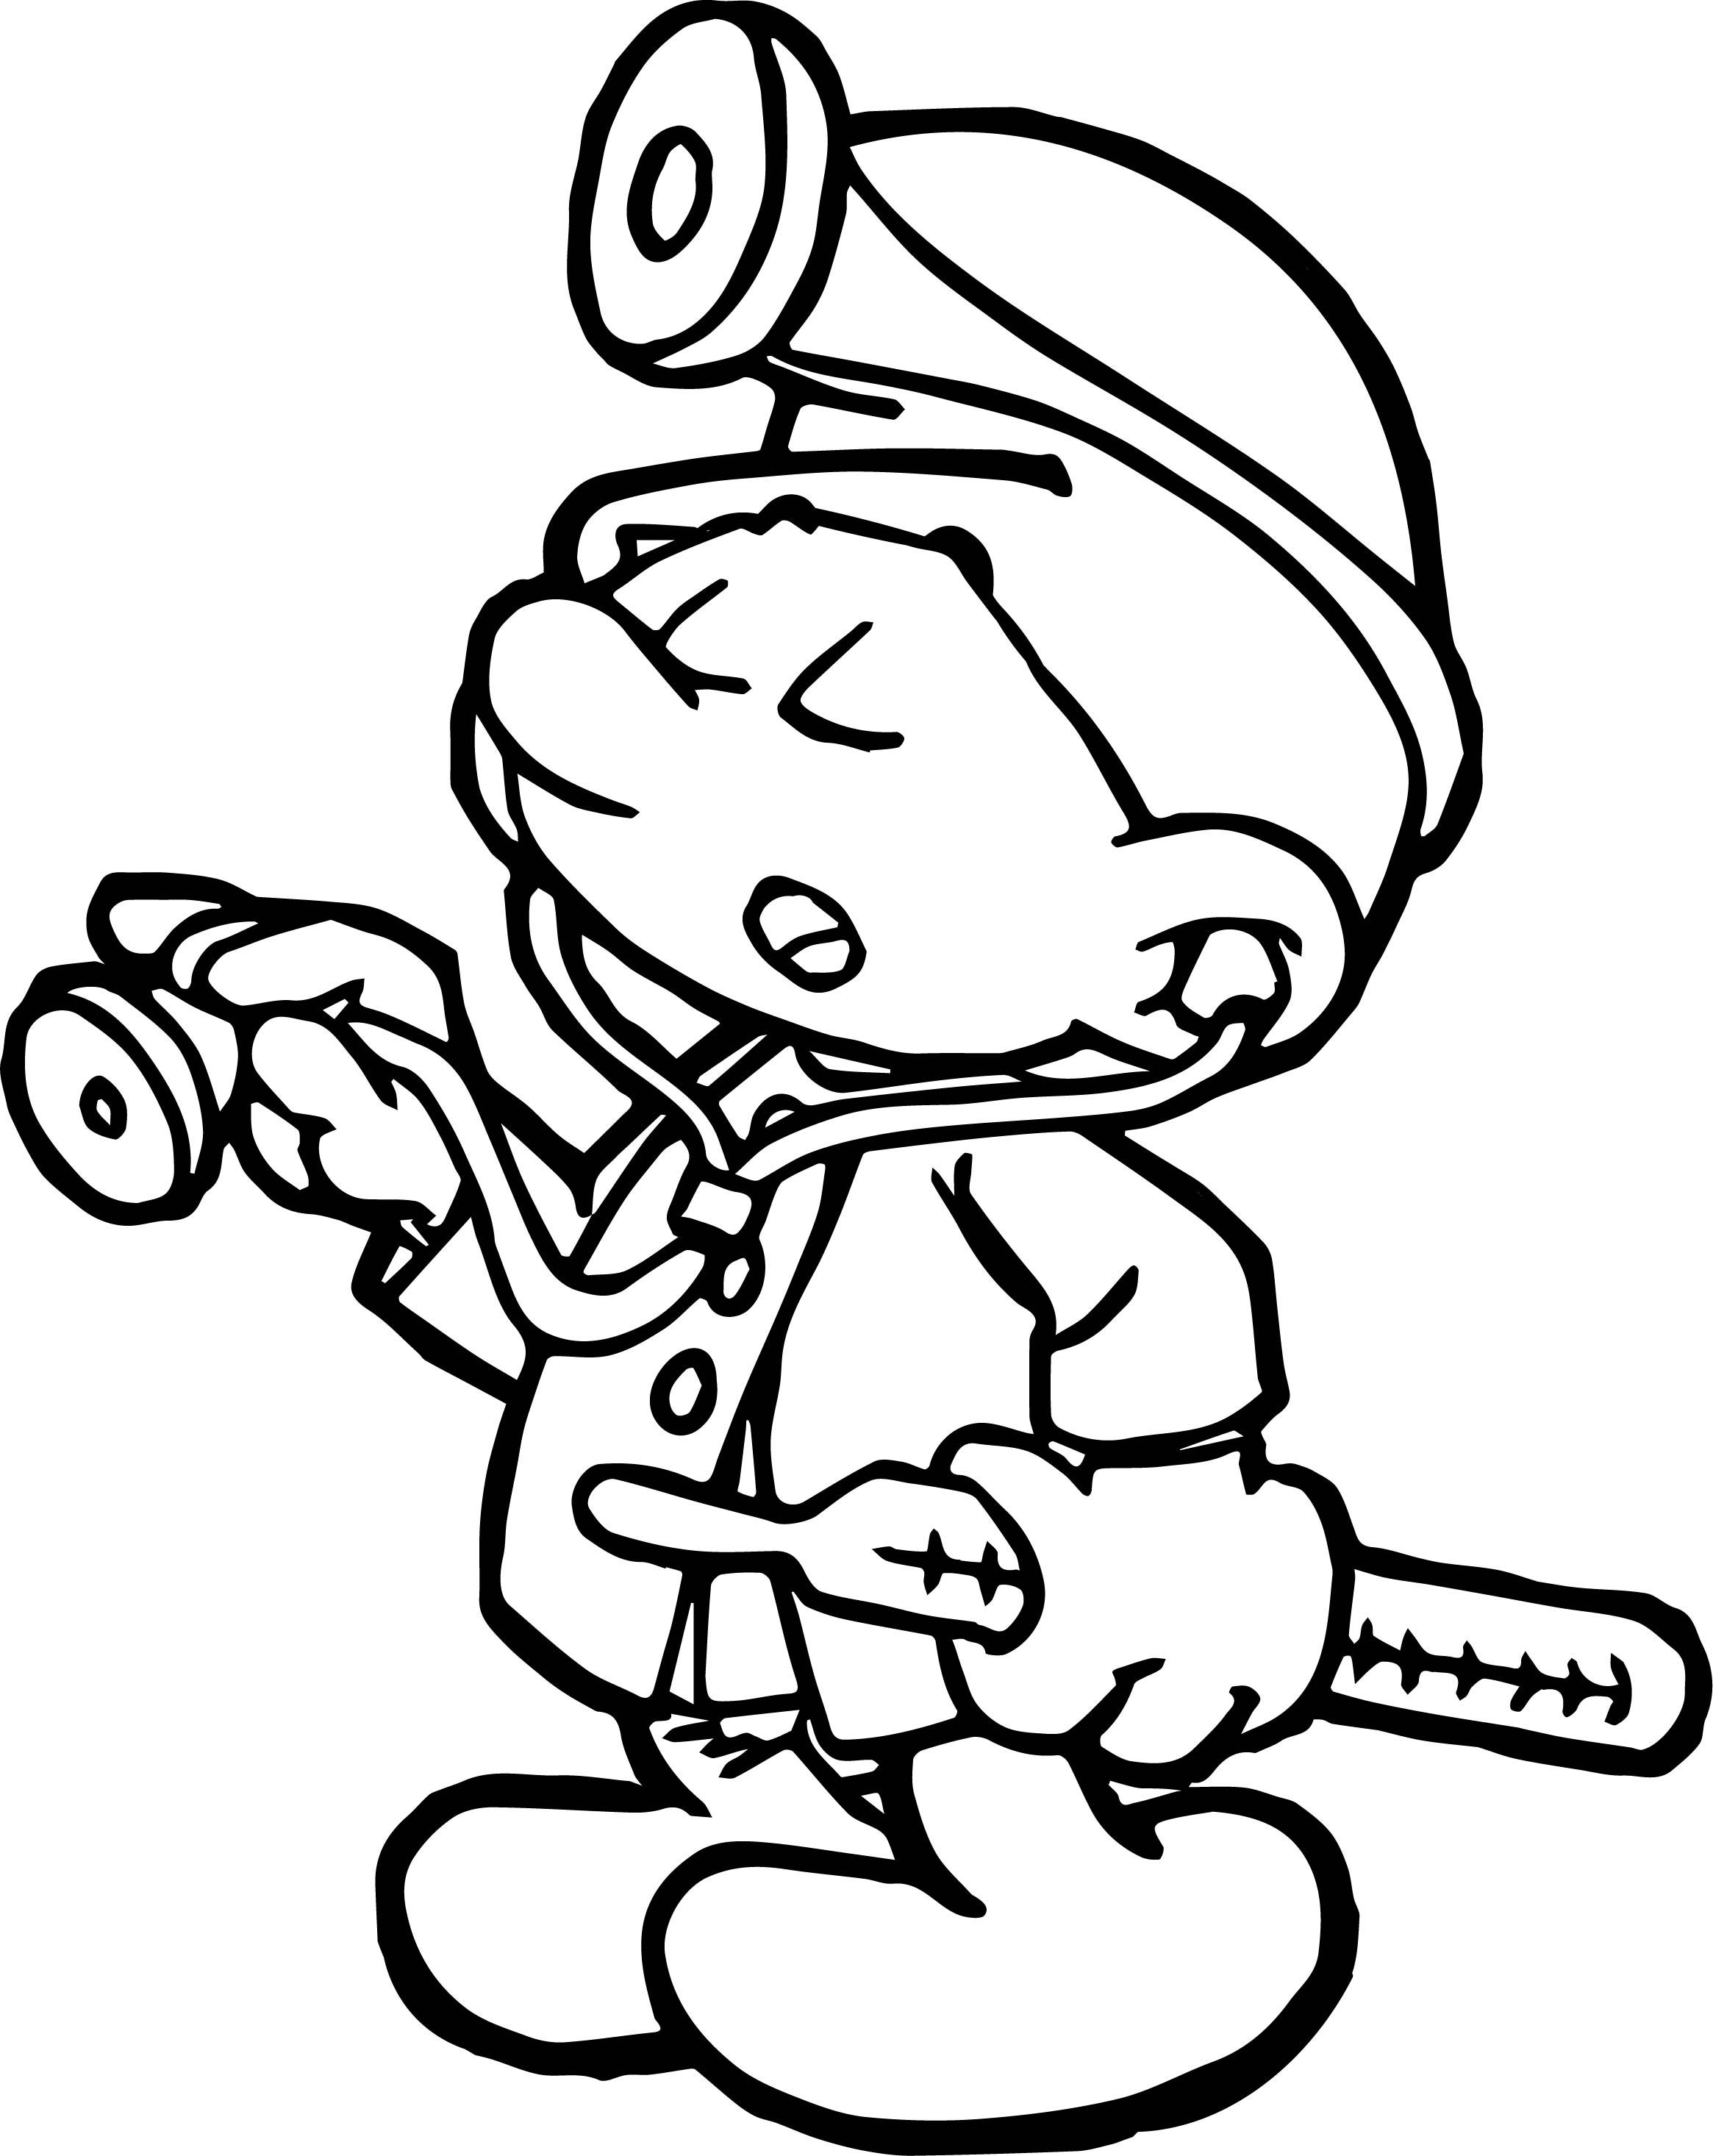 Doctor Smurf Coloring Page Jpg 2330 2932 Coloring Pages Smurfs Drawing Smurfs